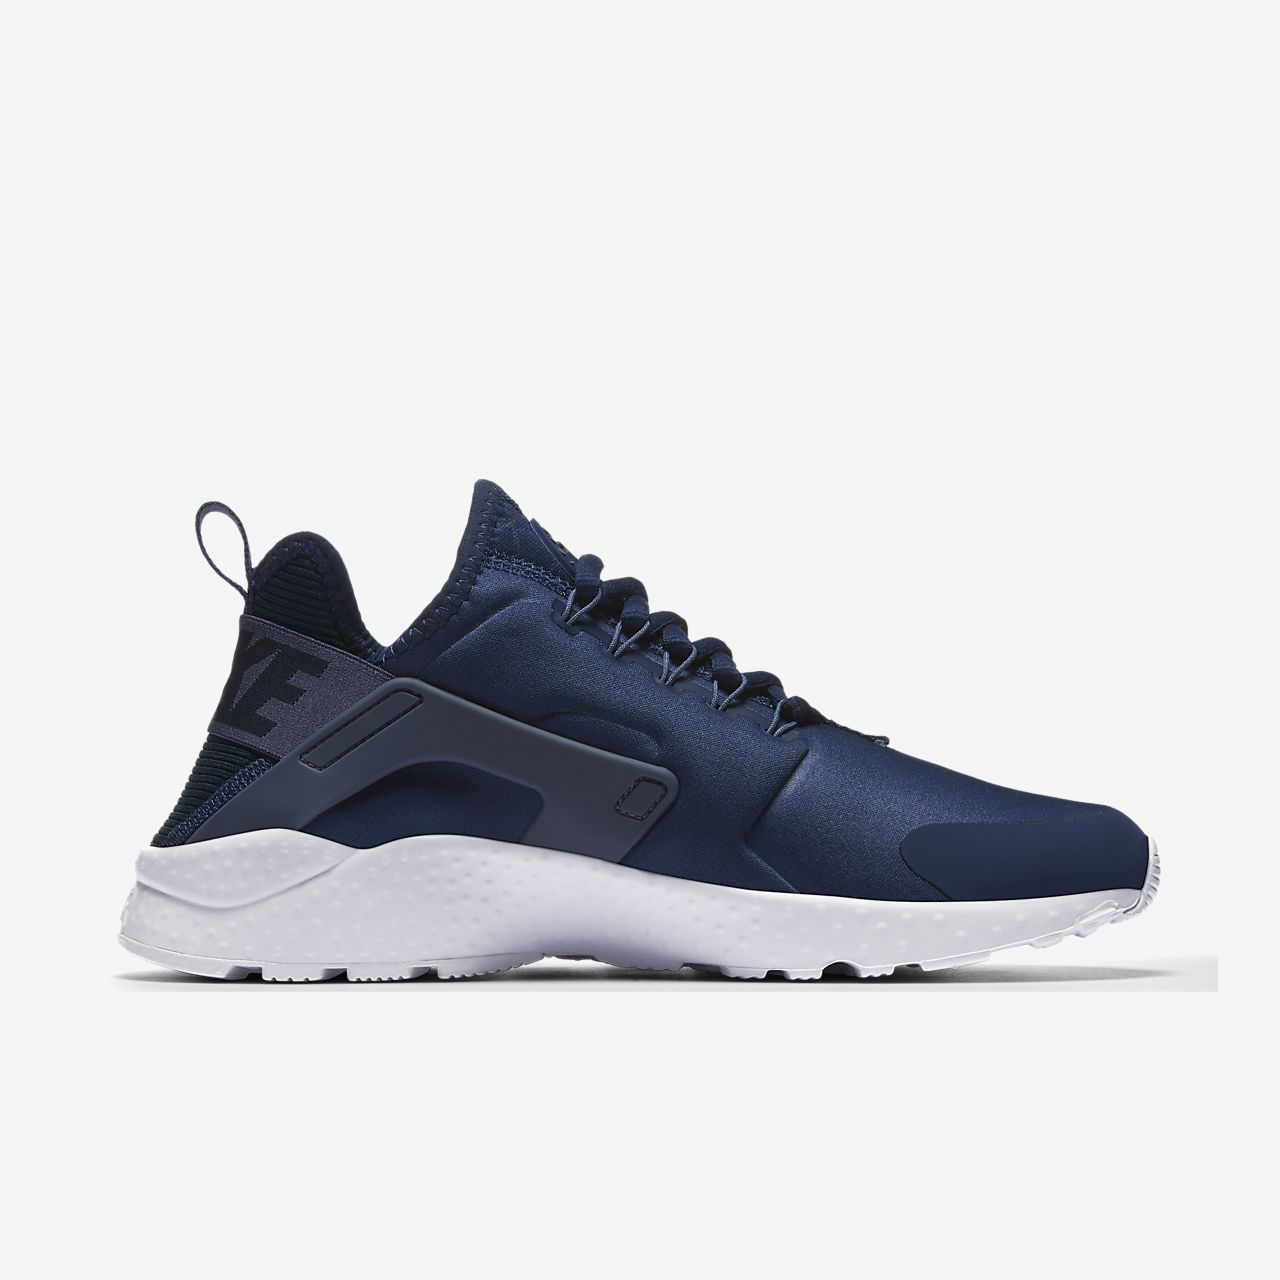 Nike Women's Air Huarache Low-Top Trainer OE_6837